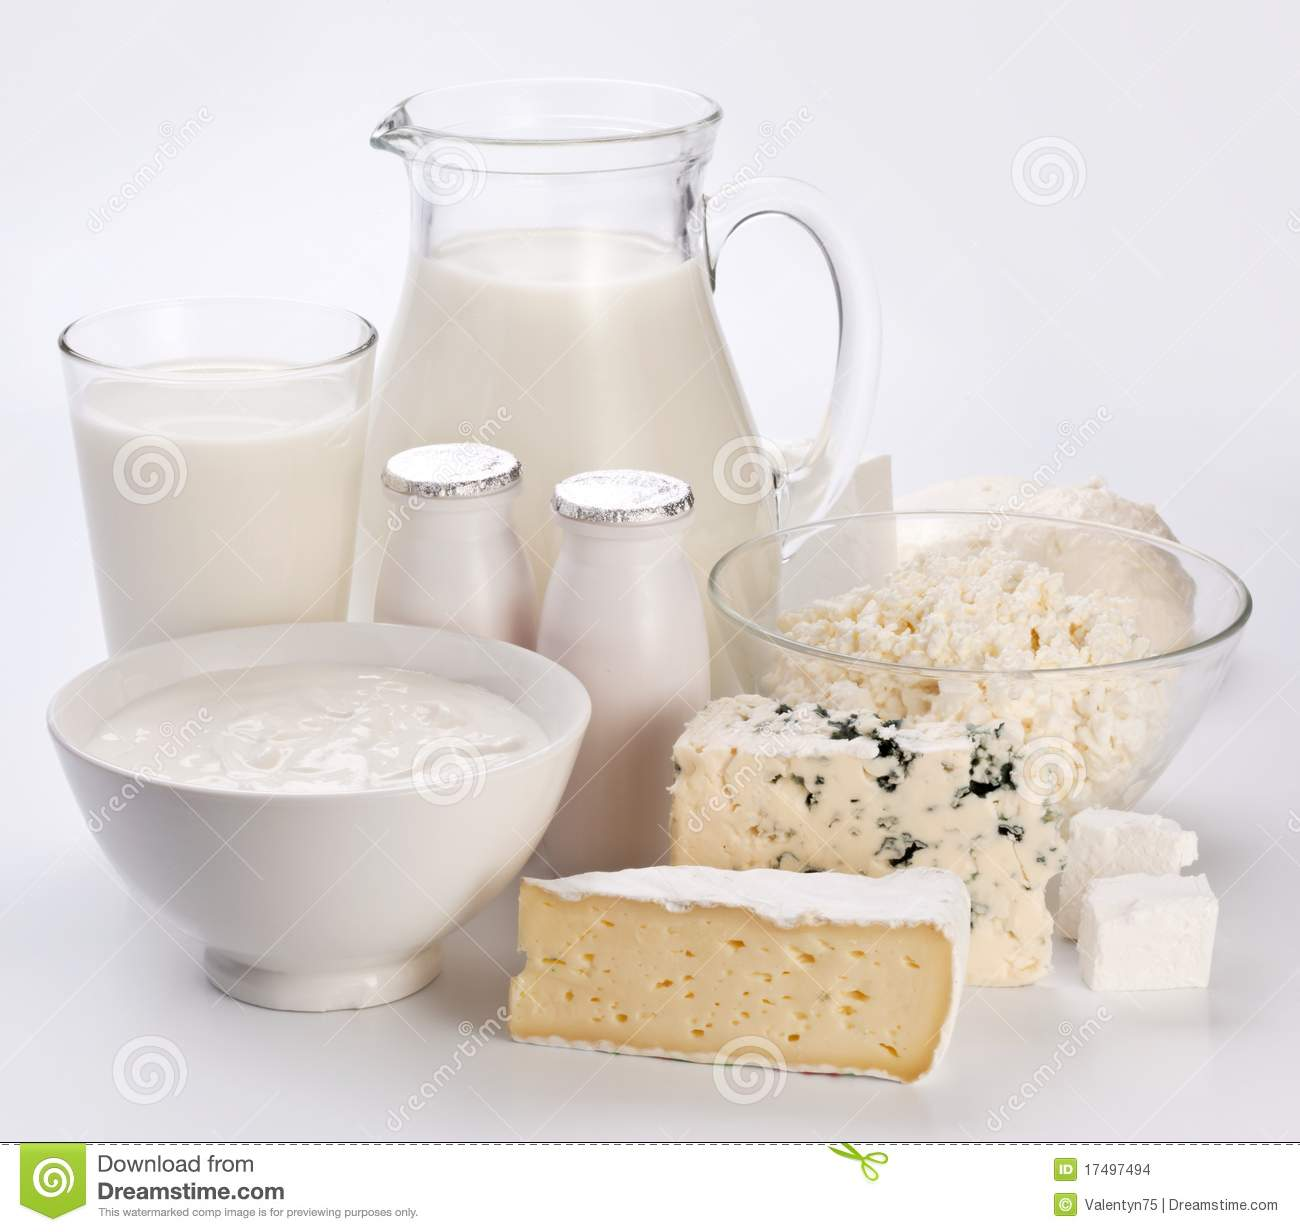 milk and dairy products essay Dairy products essay sample the fao intergovernmental group (igg) on meat and dairy products represents a forum for intergovernmental consultation and exchange on trends in production, consumption, trade and prices of meat and dairy products, including regular appraisal of the global market situation and short term outlook.